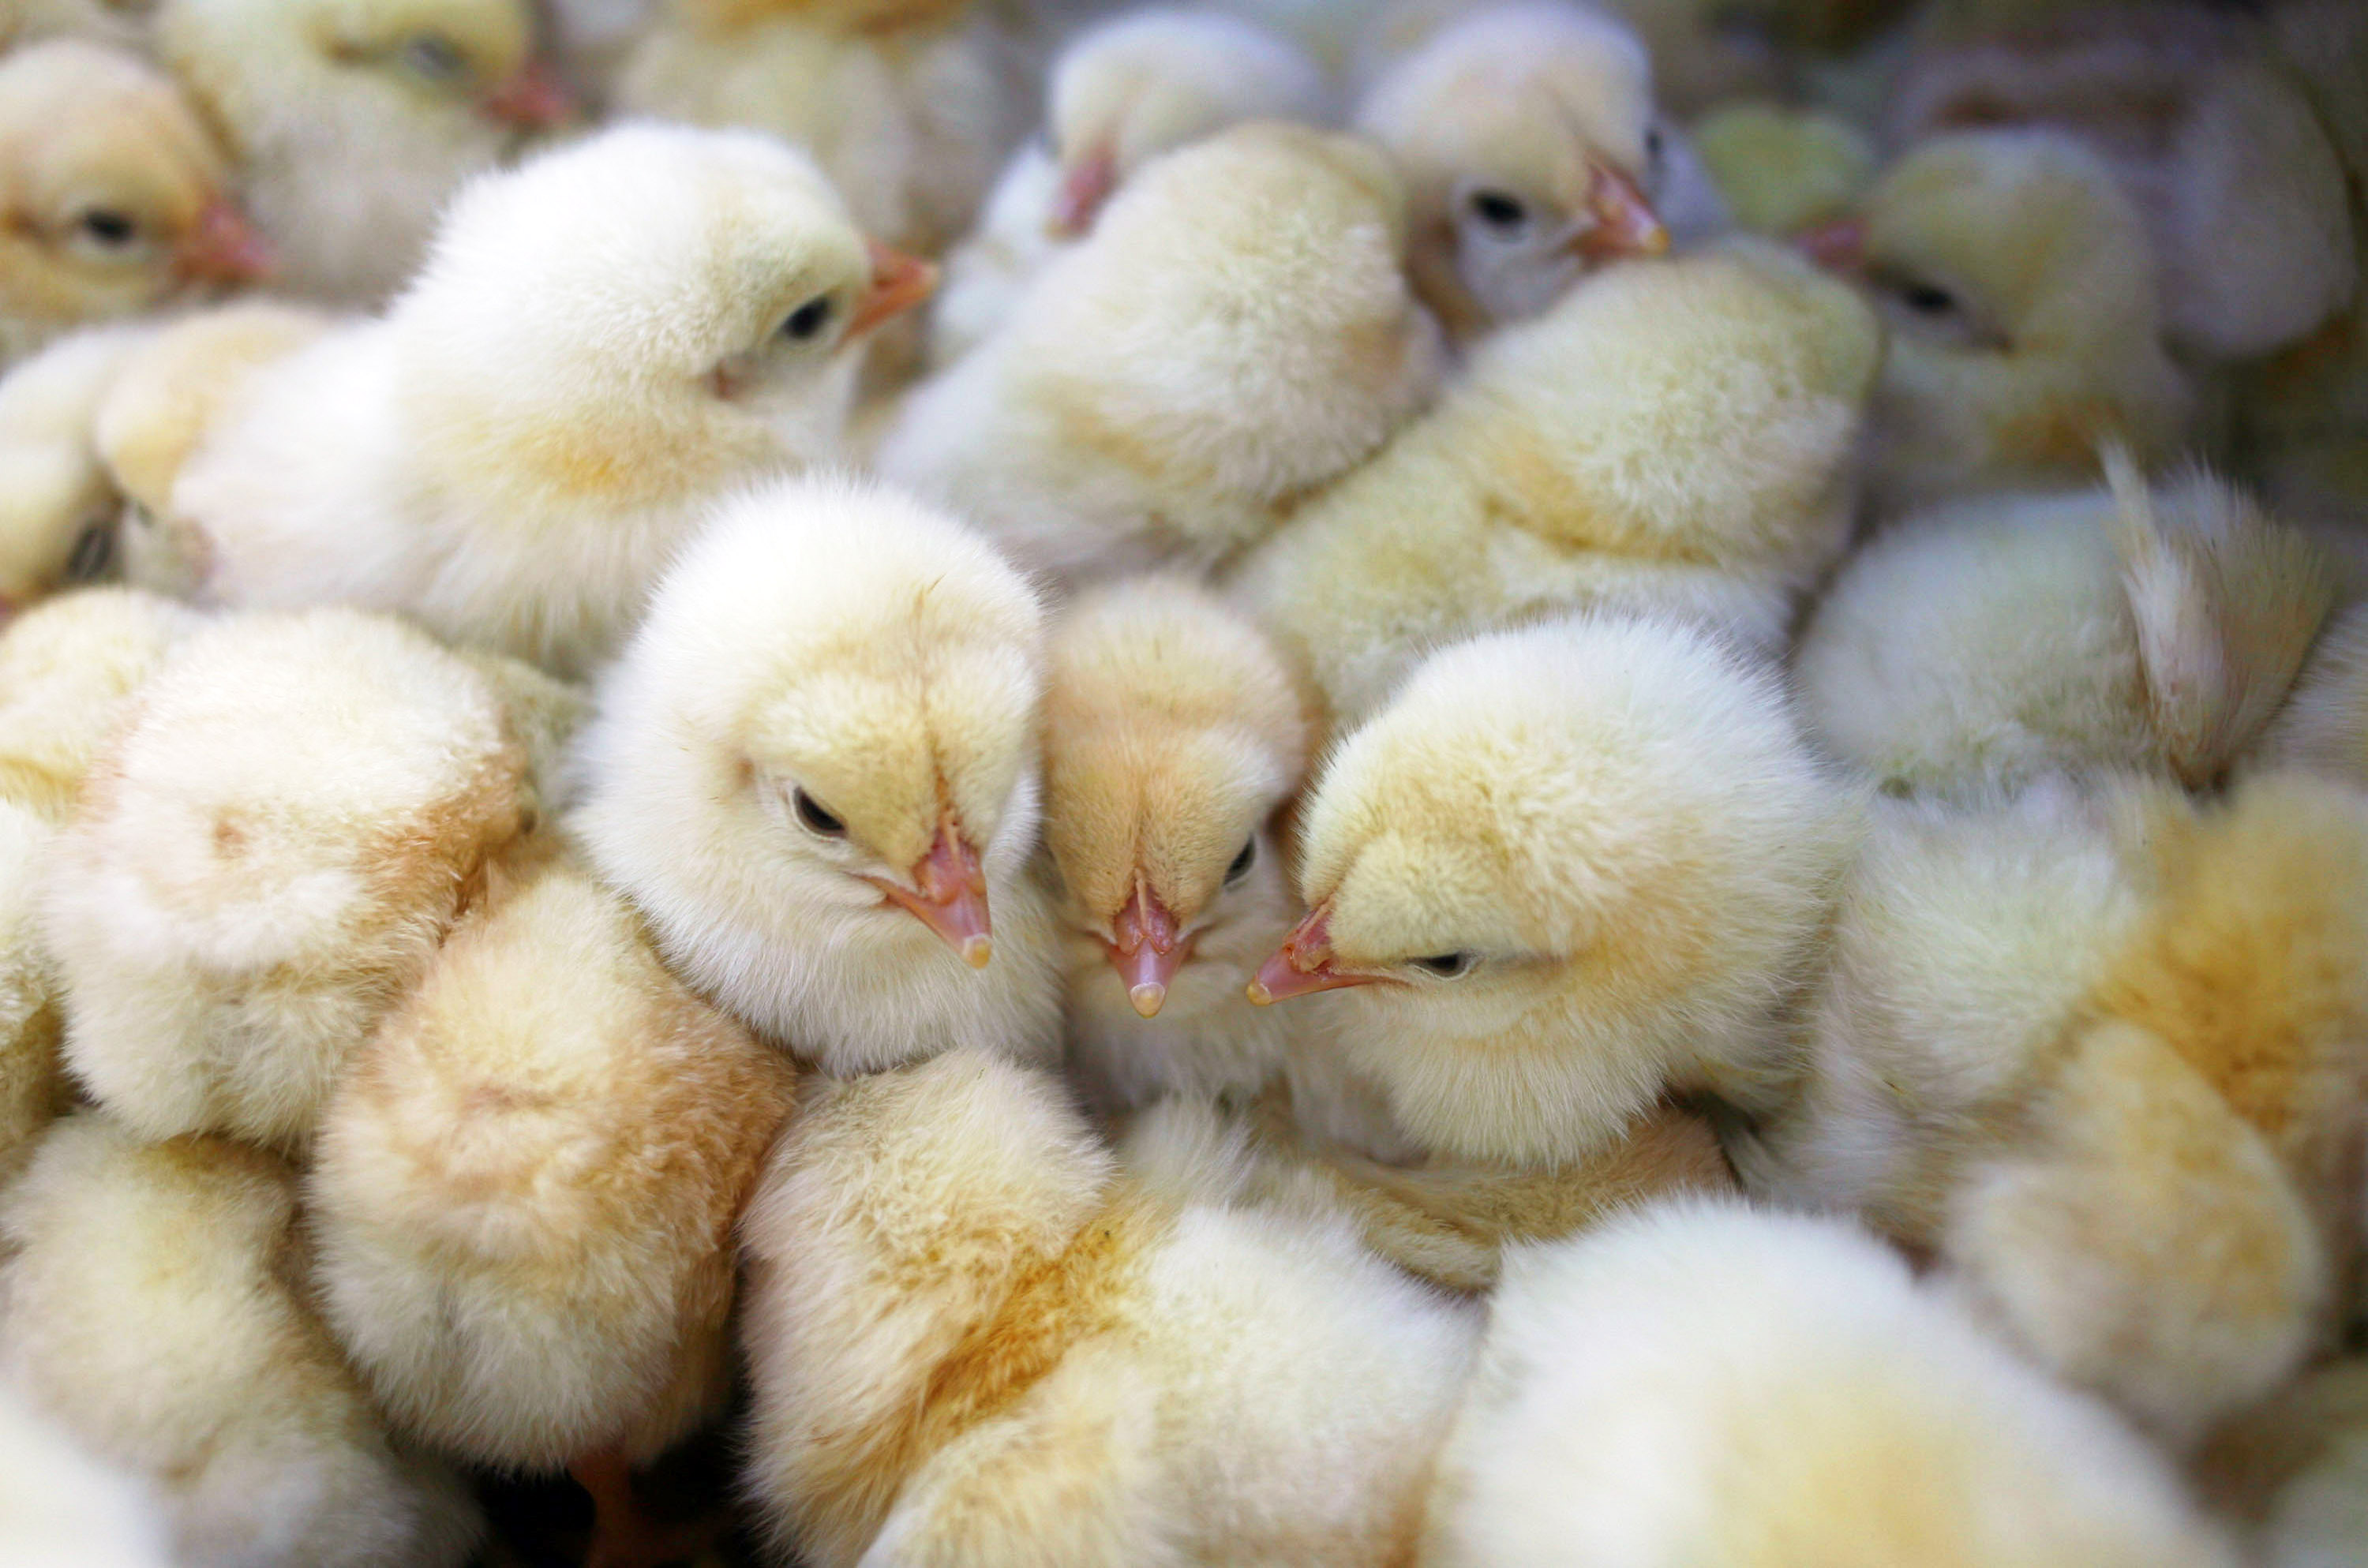 Chicks are displayed by a vendor on March 3, 2009. Belgian firefighters gassed 20,000 chicks which were suffocating in a cargo container on the tarmac at Brussels Airport.